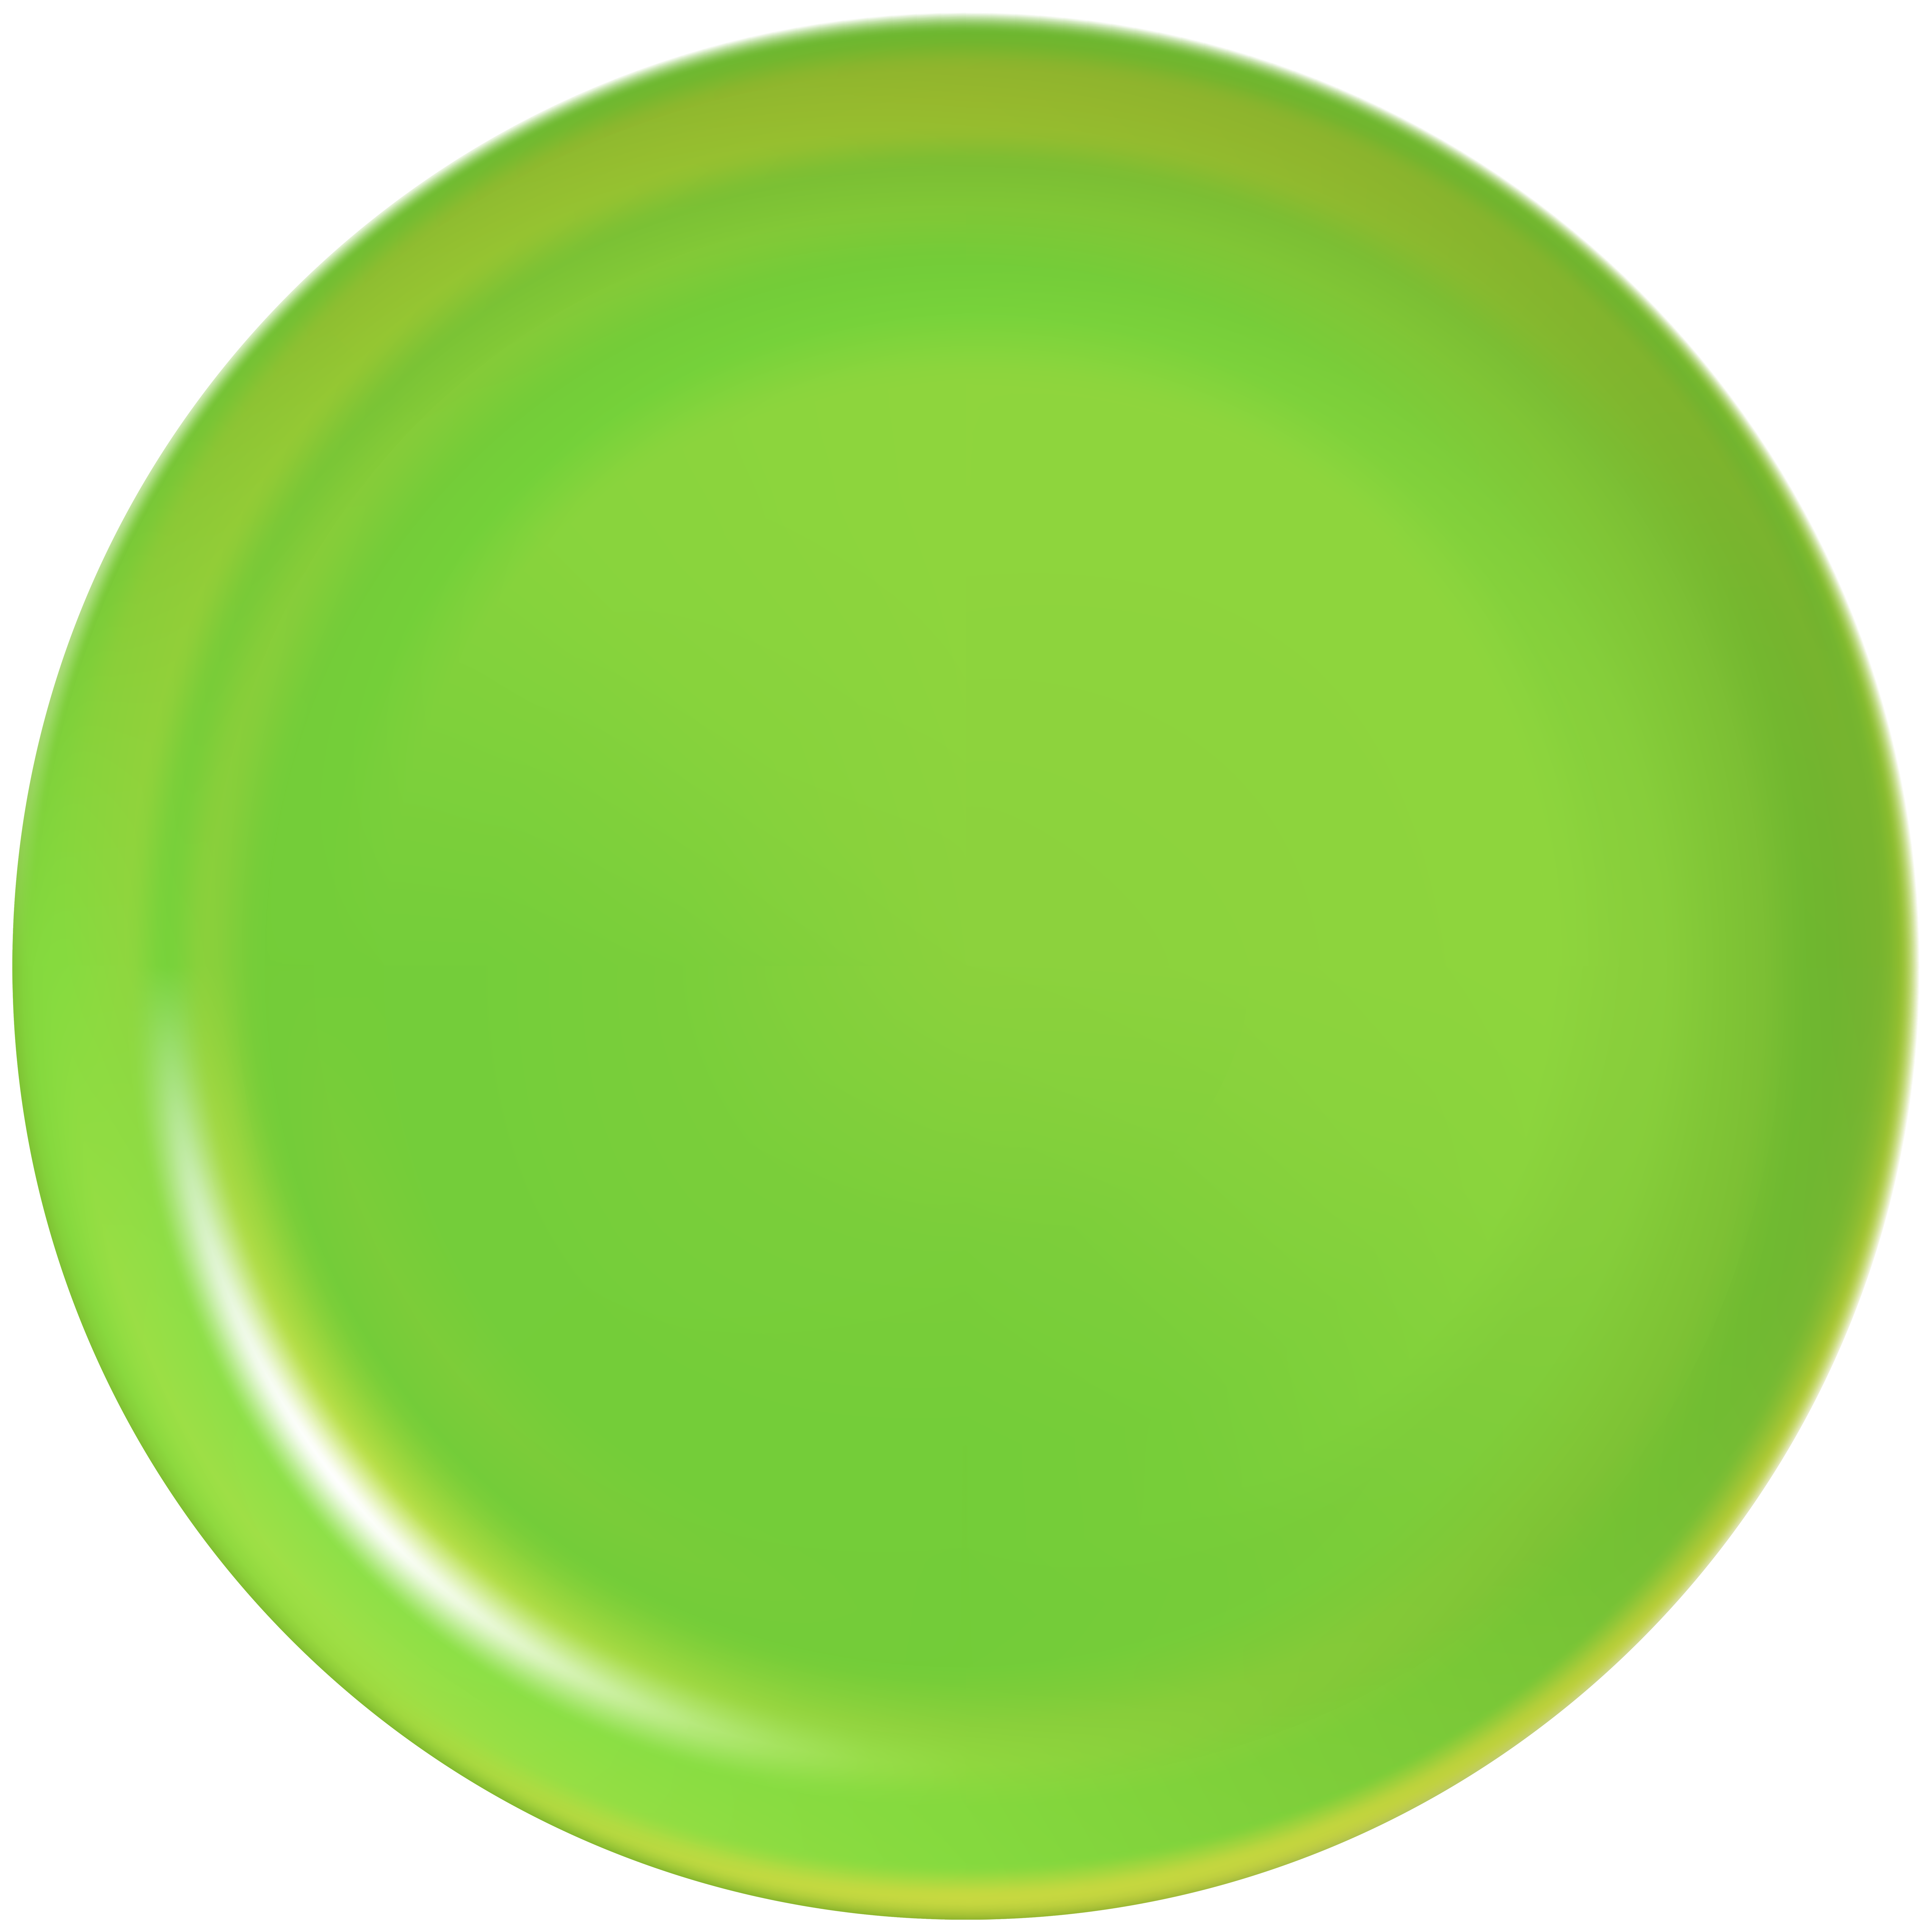 Clipart road top view. Green plate png clip